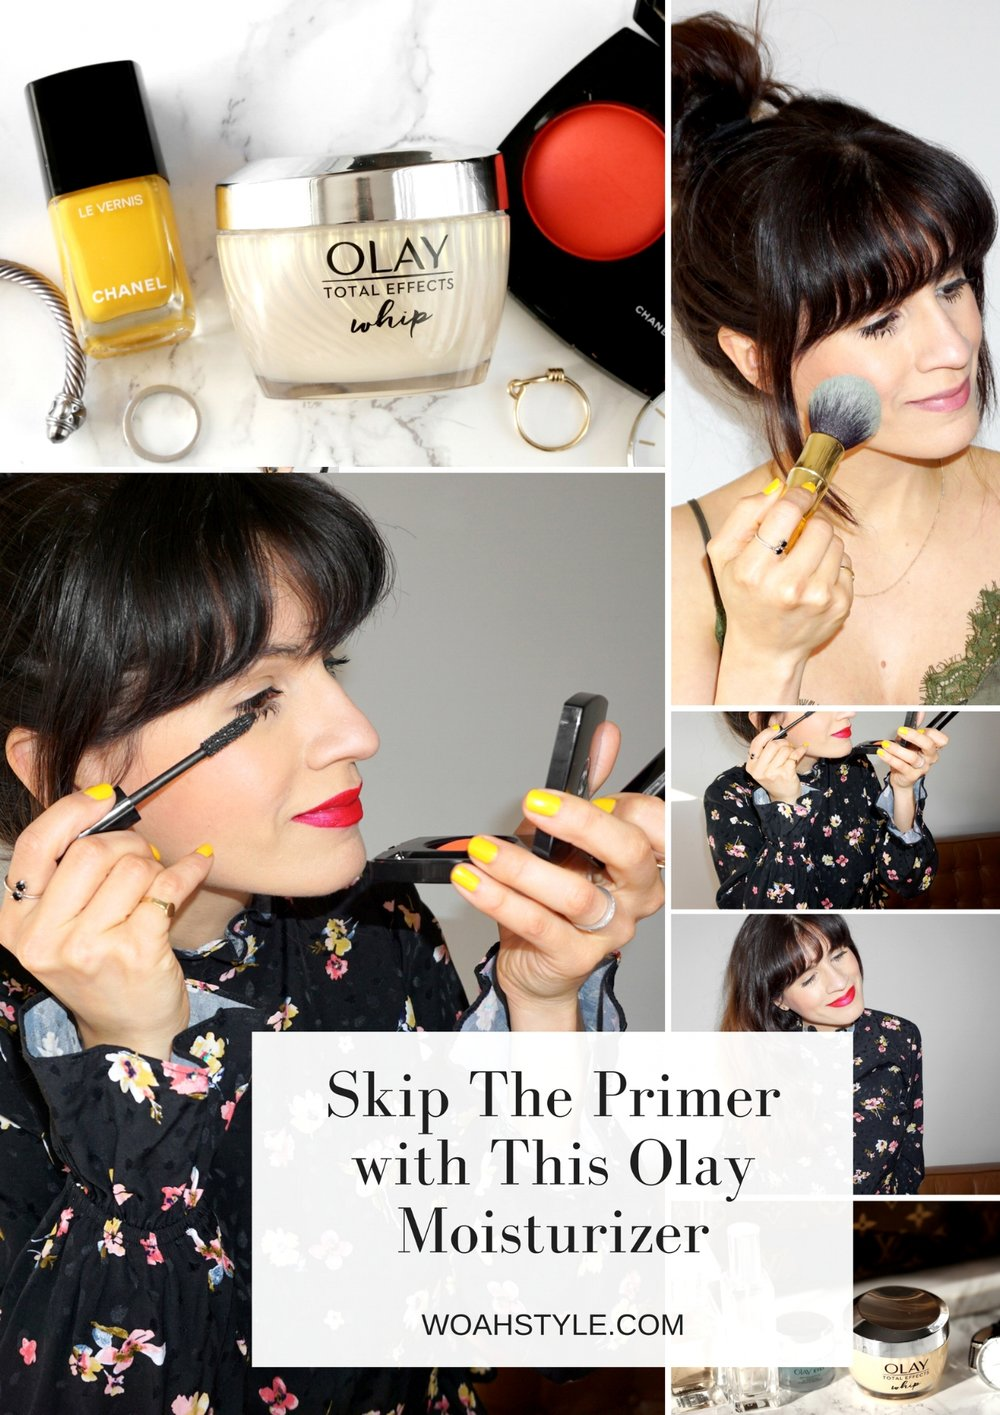 Skip The Primer with This Olay Moisturizer.jpg